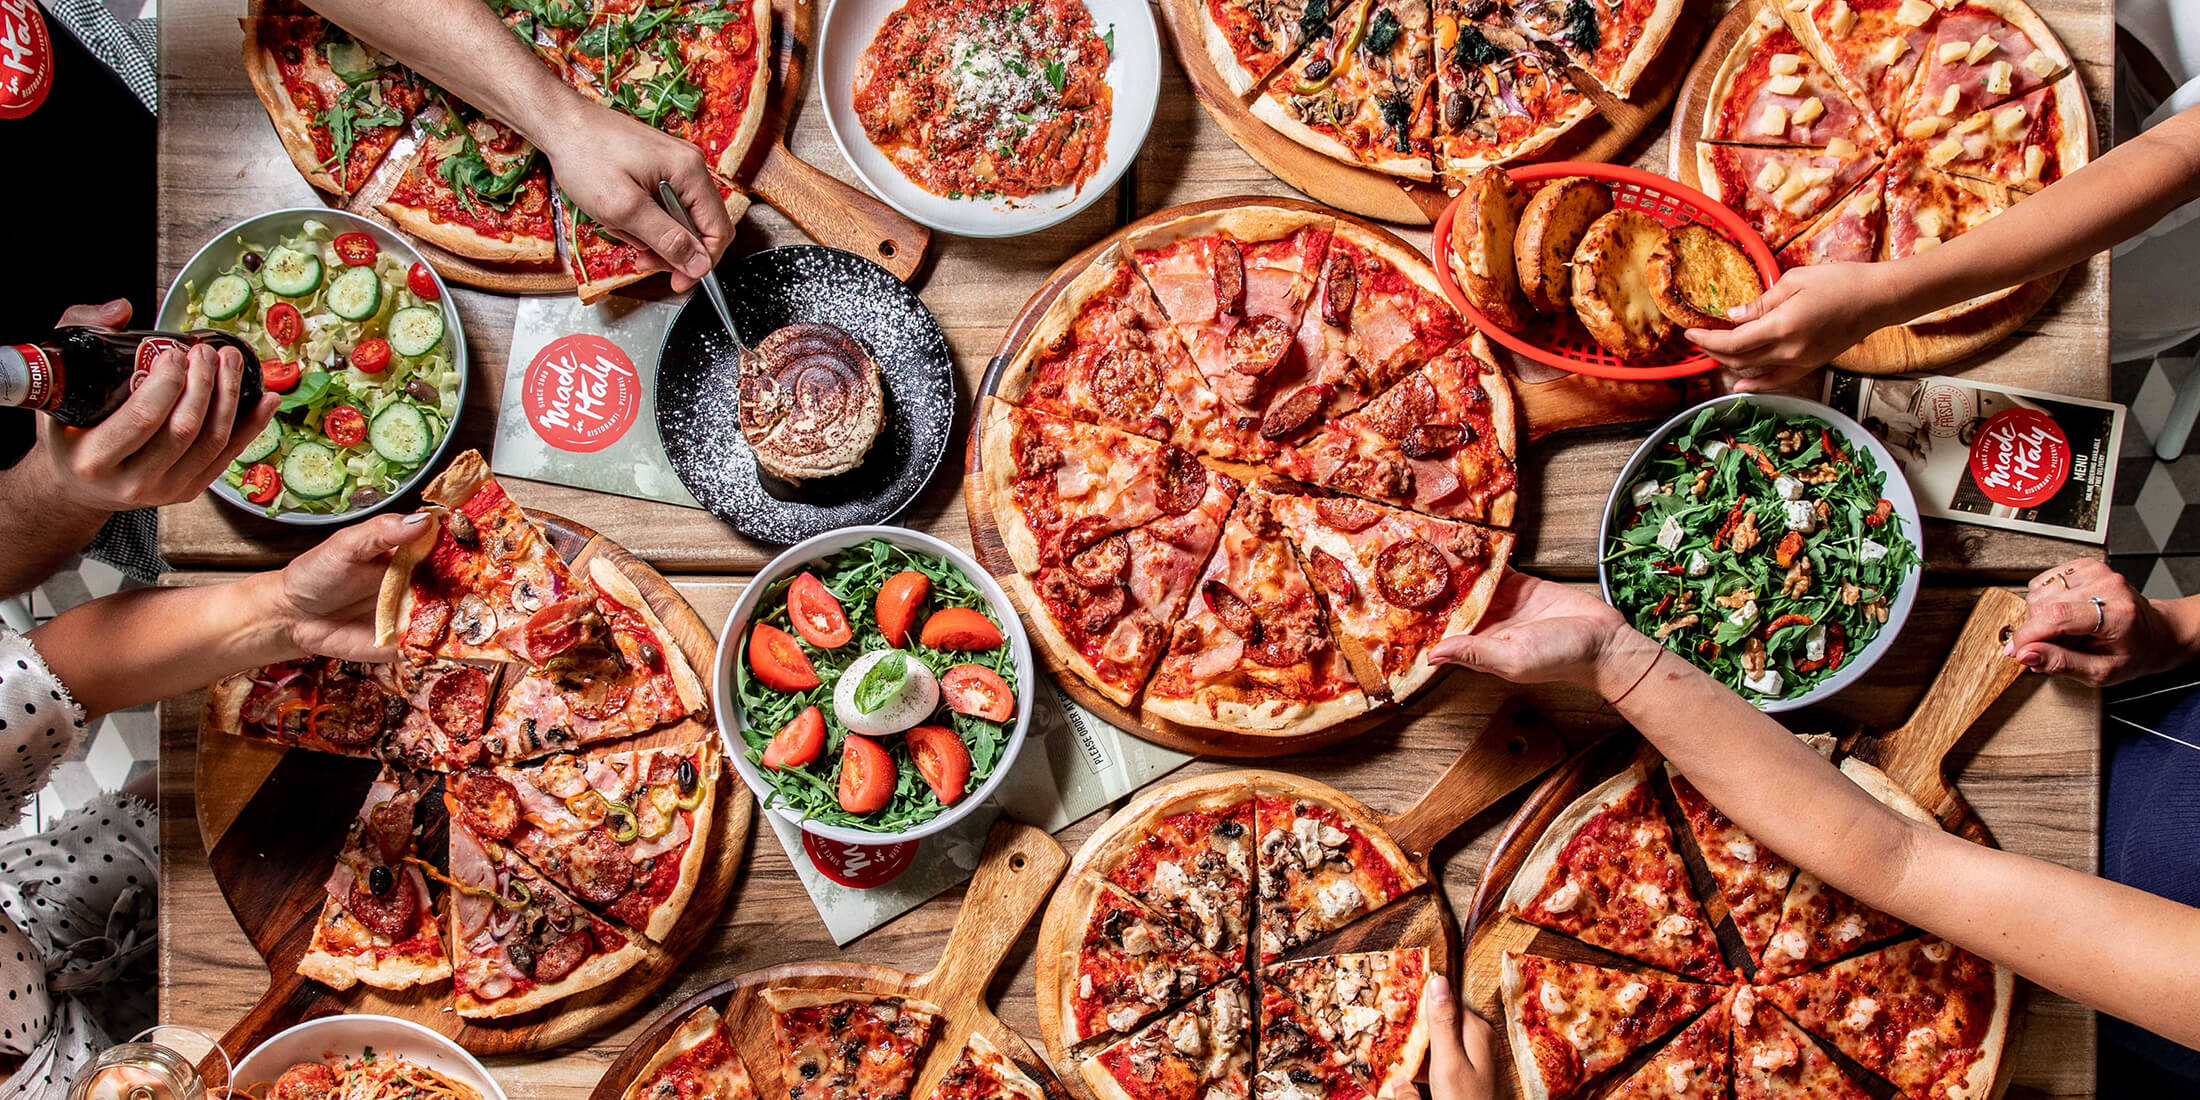 We deliver Italian pizza and pasta in Newtown